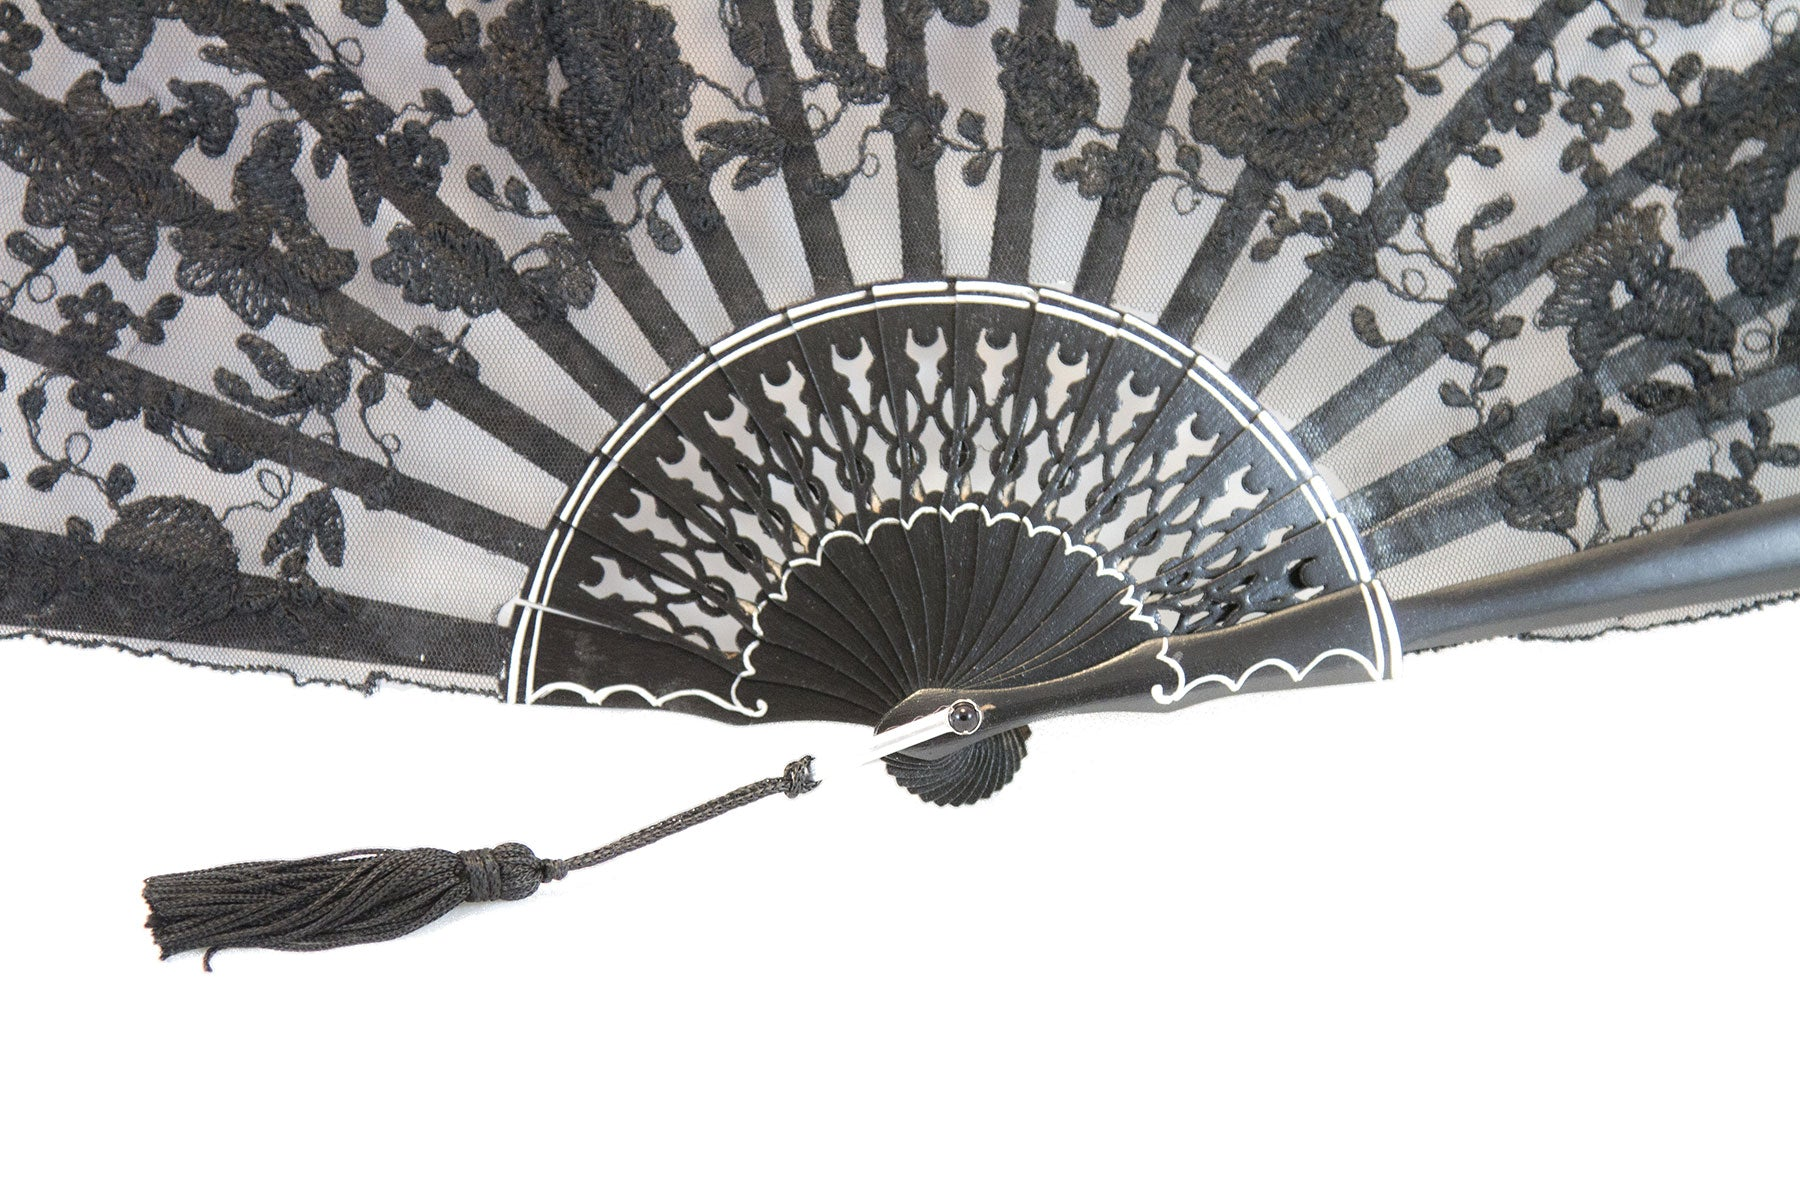 Rockcoco Bruges delicate handmade black lace luxury hand fan detail